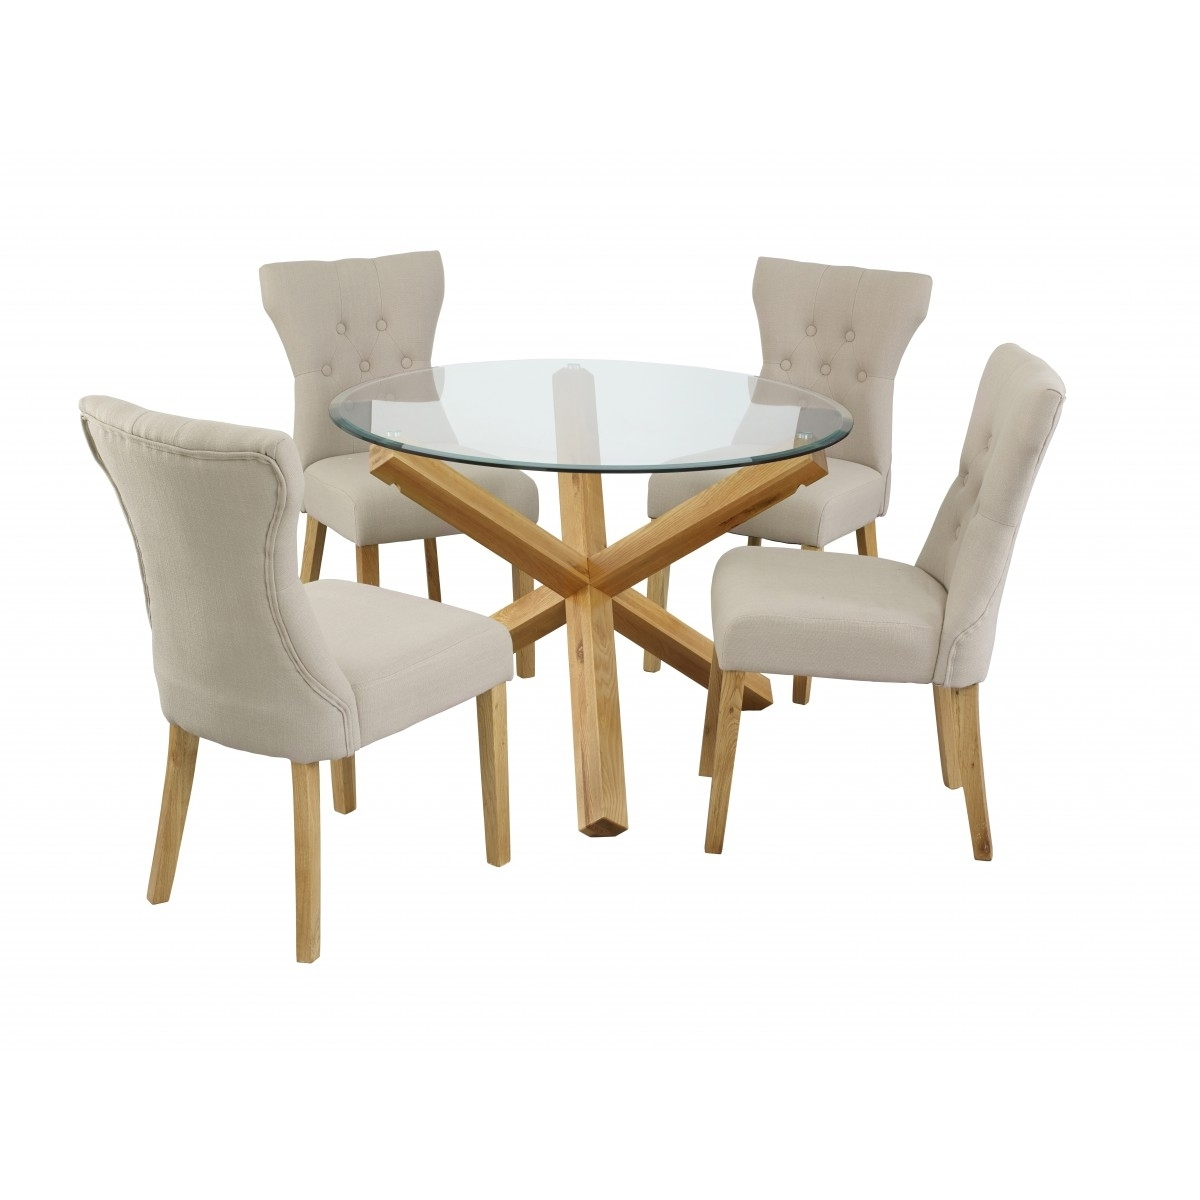 Preferred Lpd Oporto Medium Round Glass Dining Table – Oak – Home Done Within Oak Glass Dining Tables (View 20 of 25)